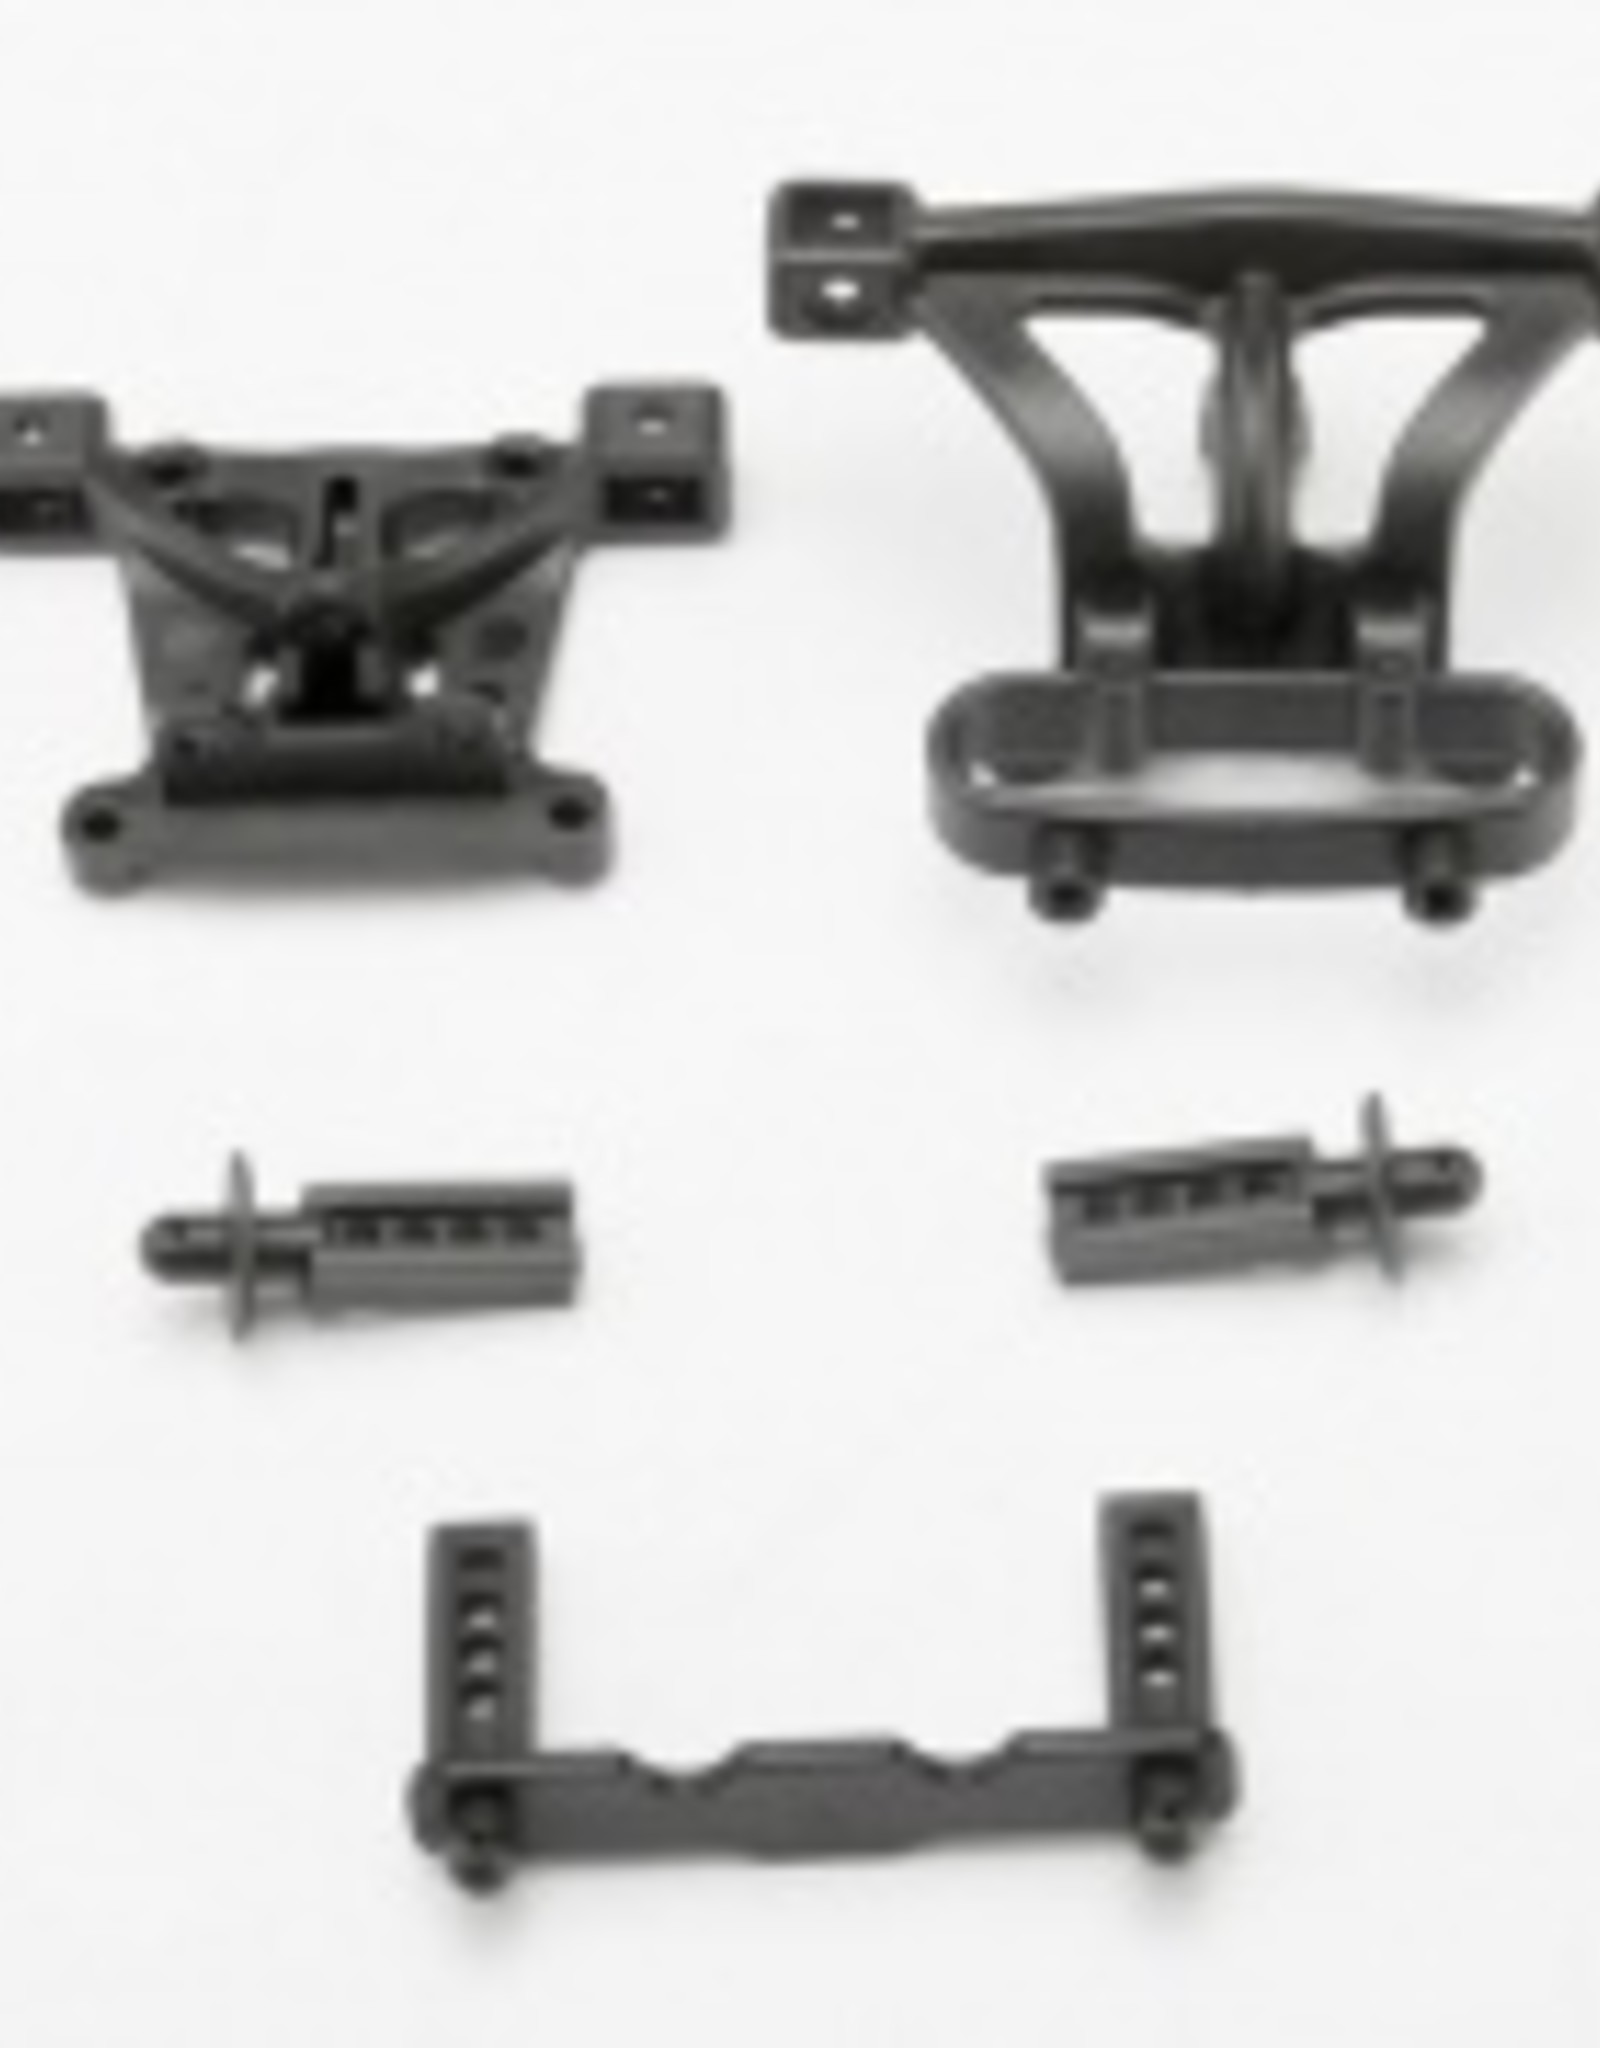 Traxxas Traxxas 1/16 Body mounts, front & rear/ body mount posts, front & rear